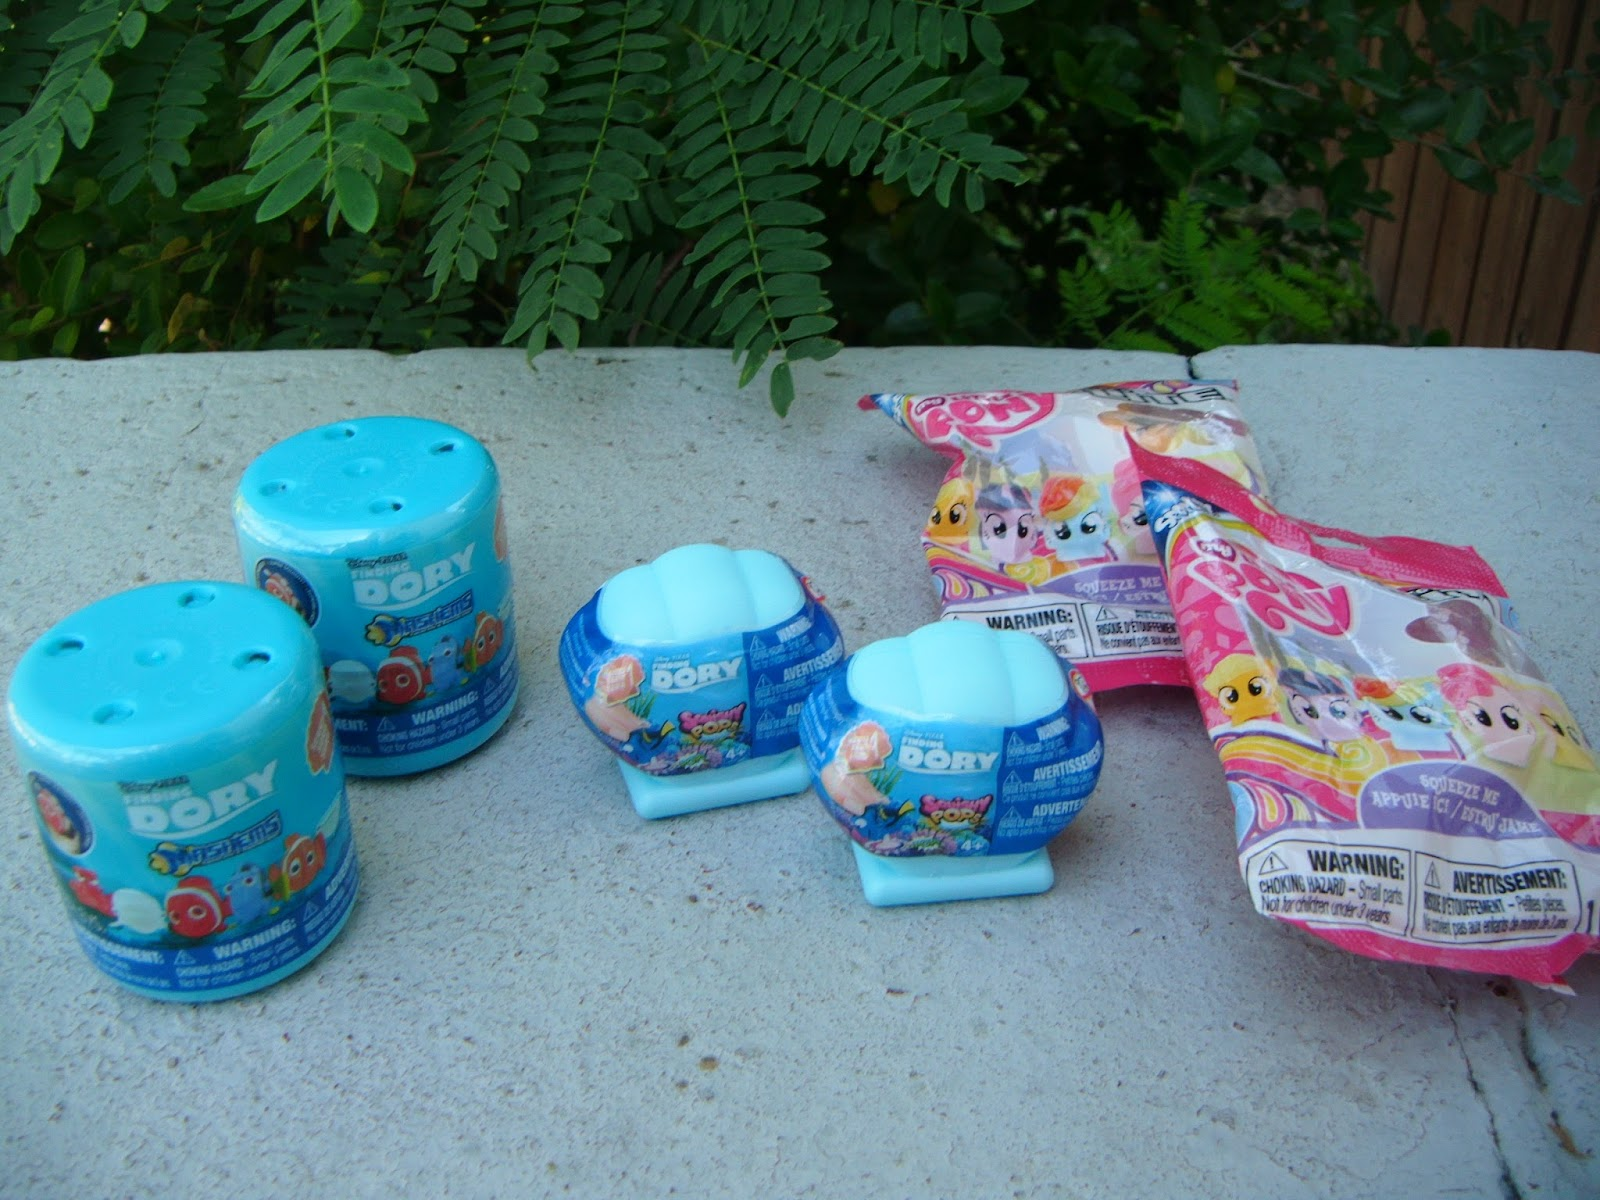 Case Of Squishy Pops : The ABCD Diaries: Squishy Summer Fun With Collectible Finding Dory Mash  ems and More!